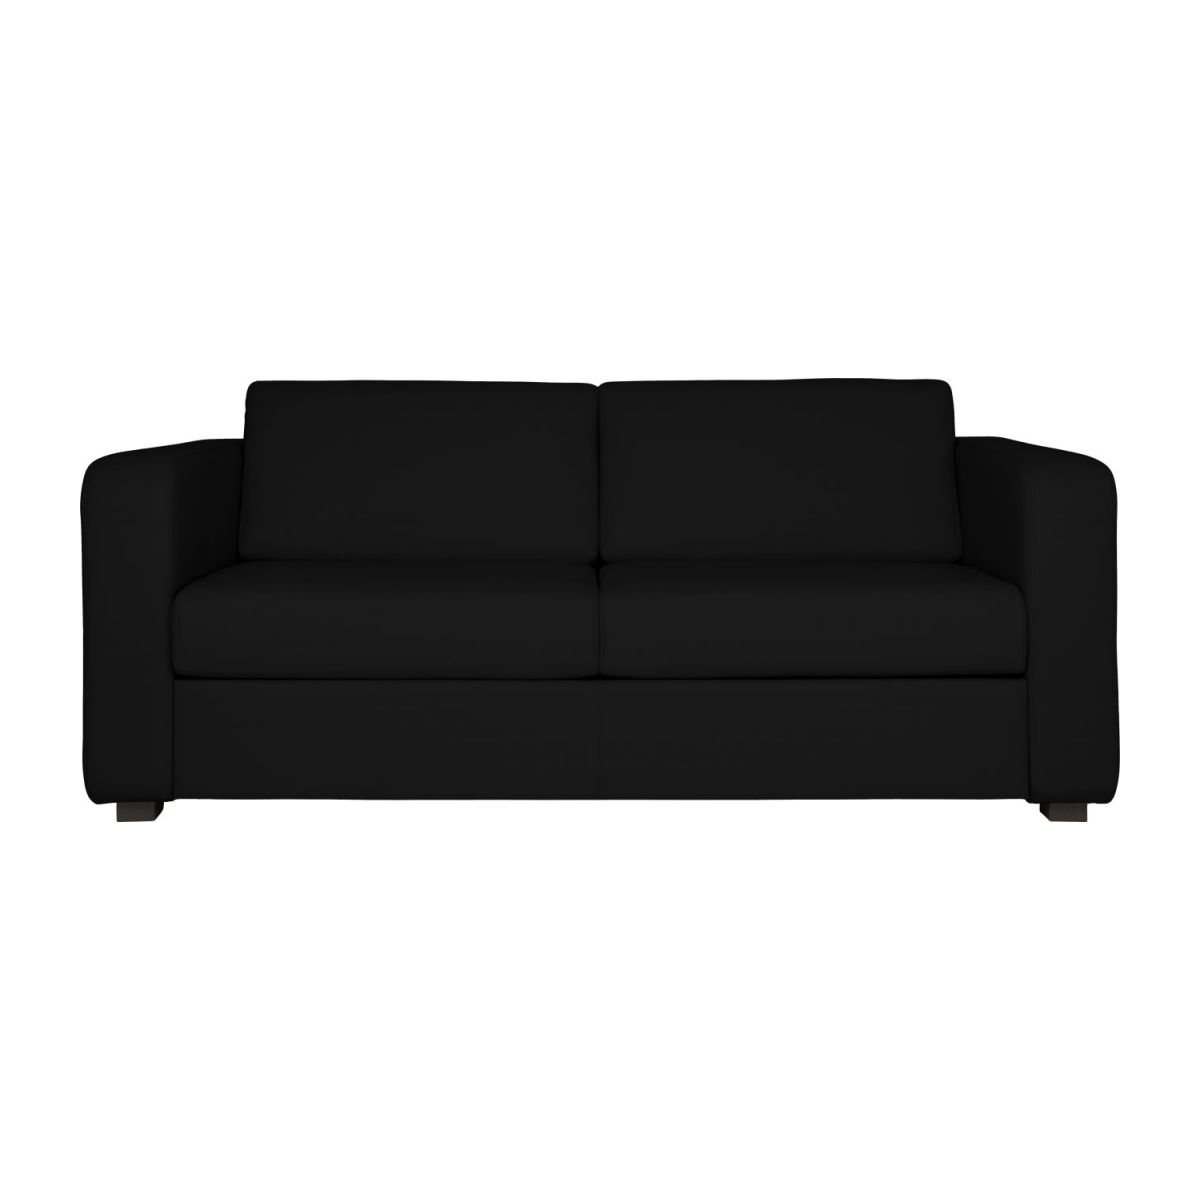 3-seater leather sofa n°2